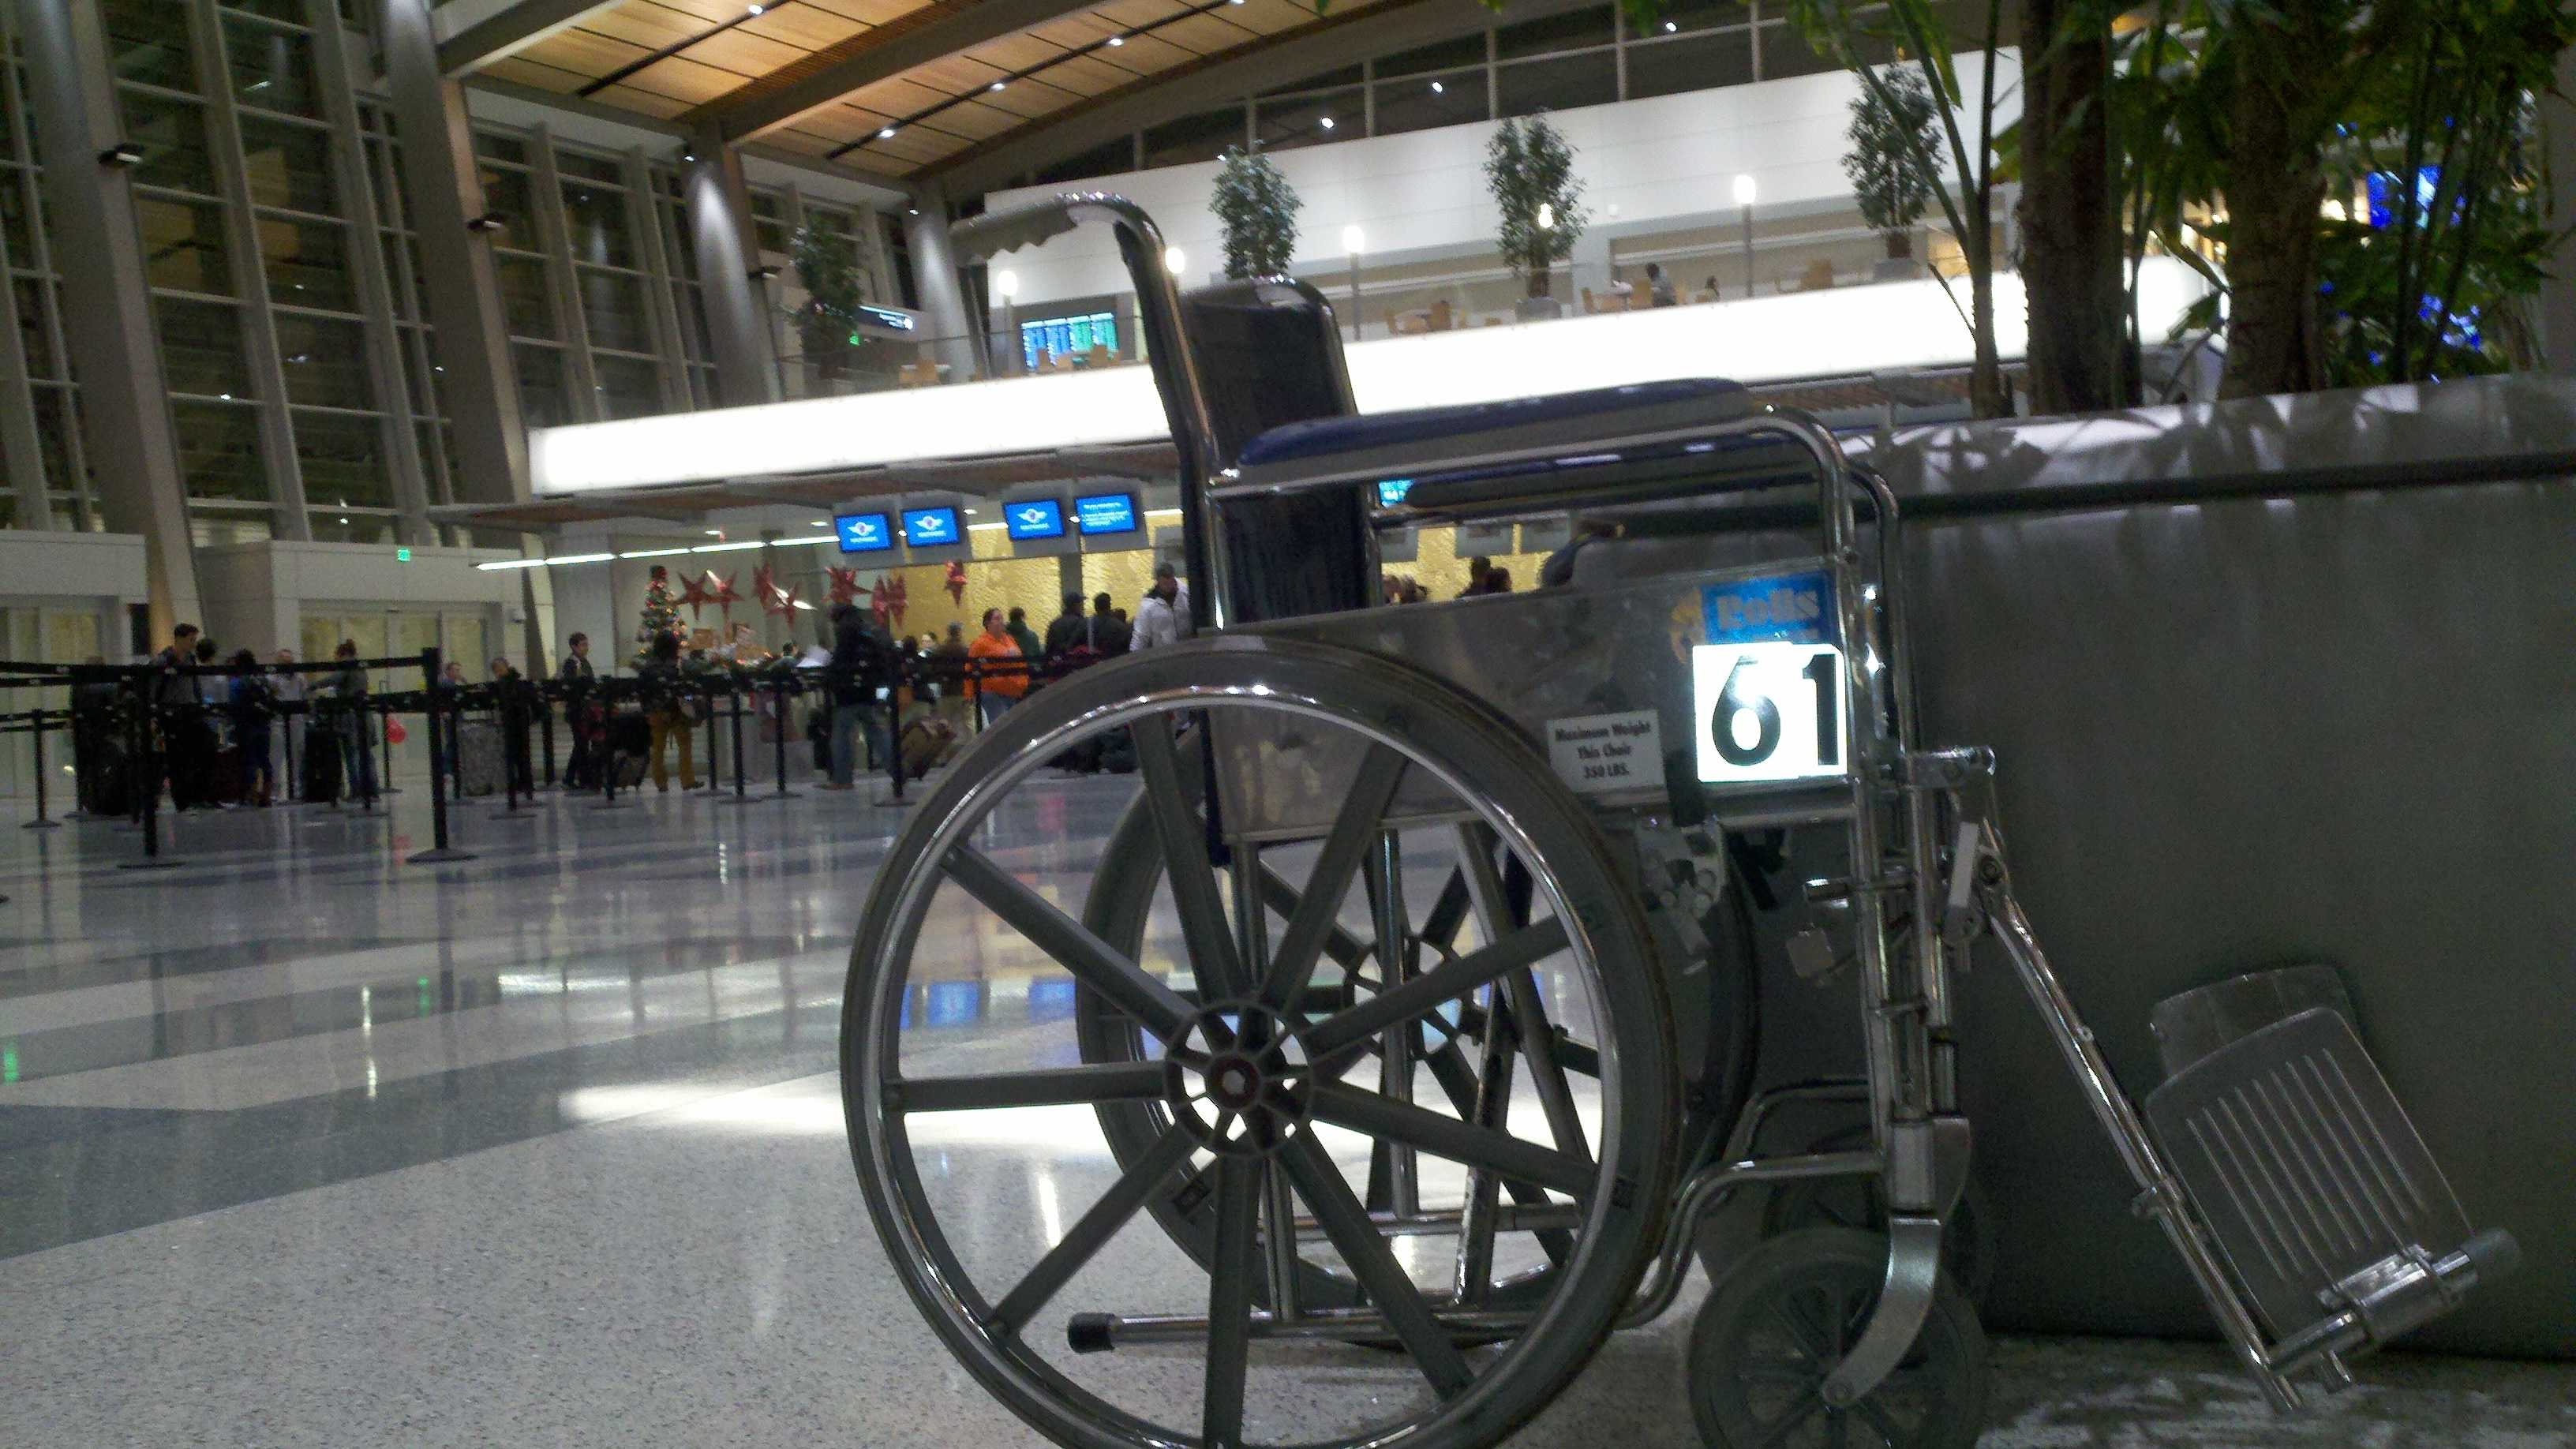 A woman who uses a wheelchair is suing Sacramento County over accessibility issues at the airport's Terminal B.